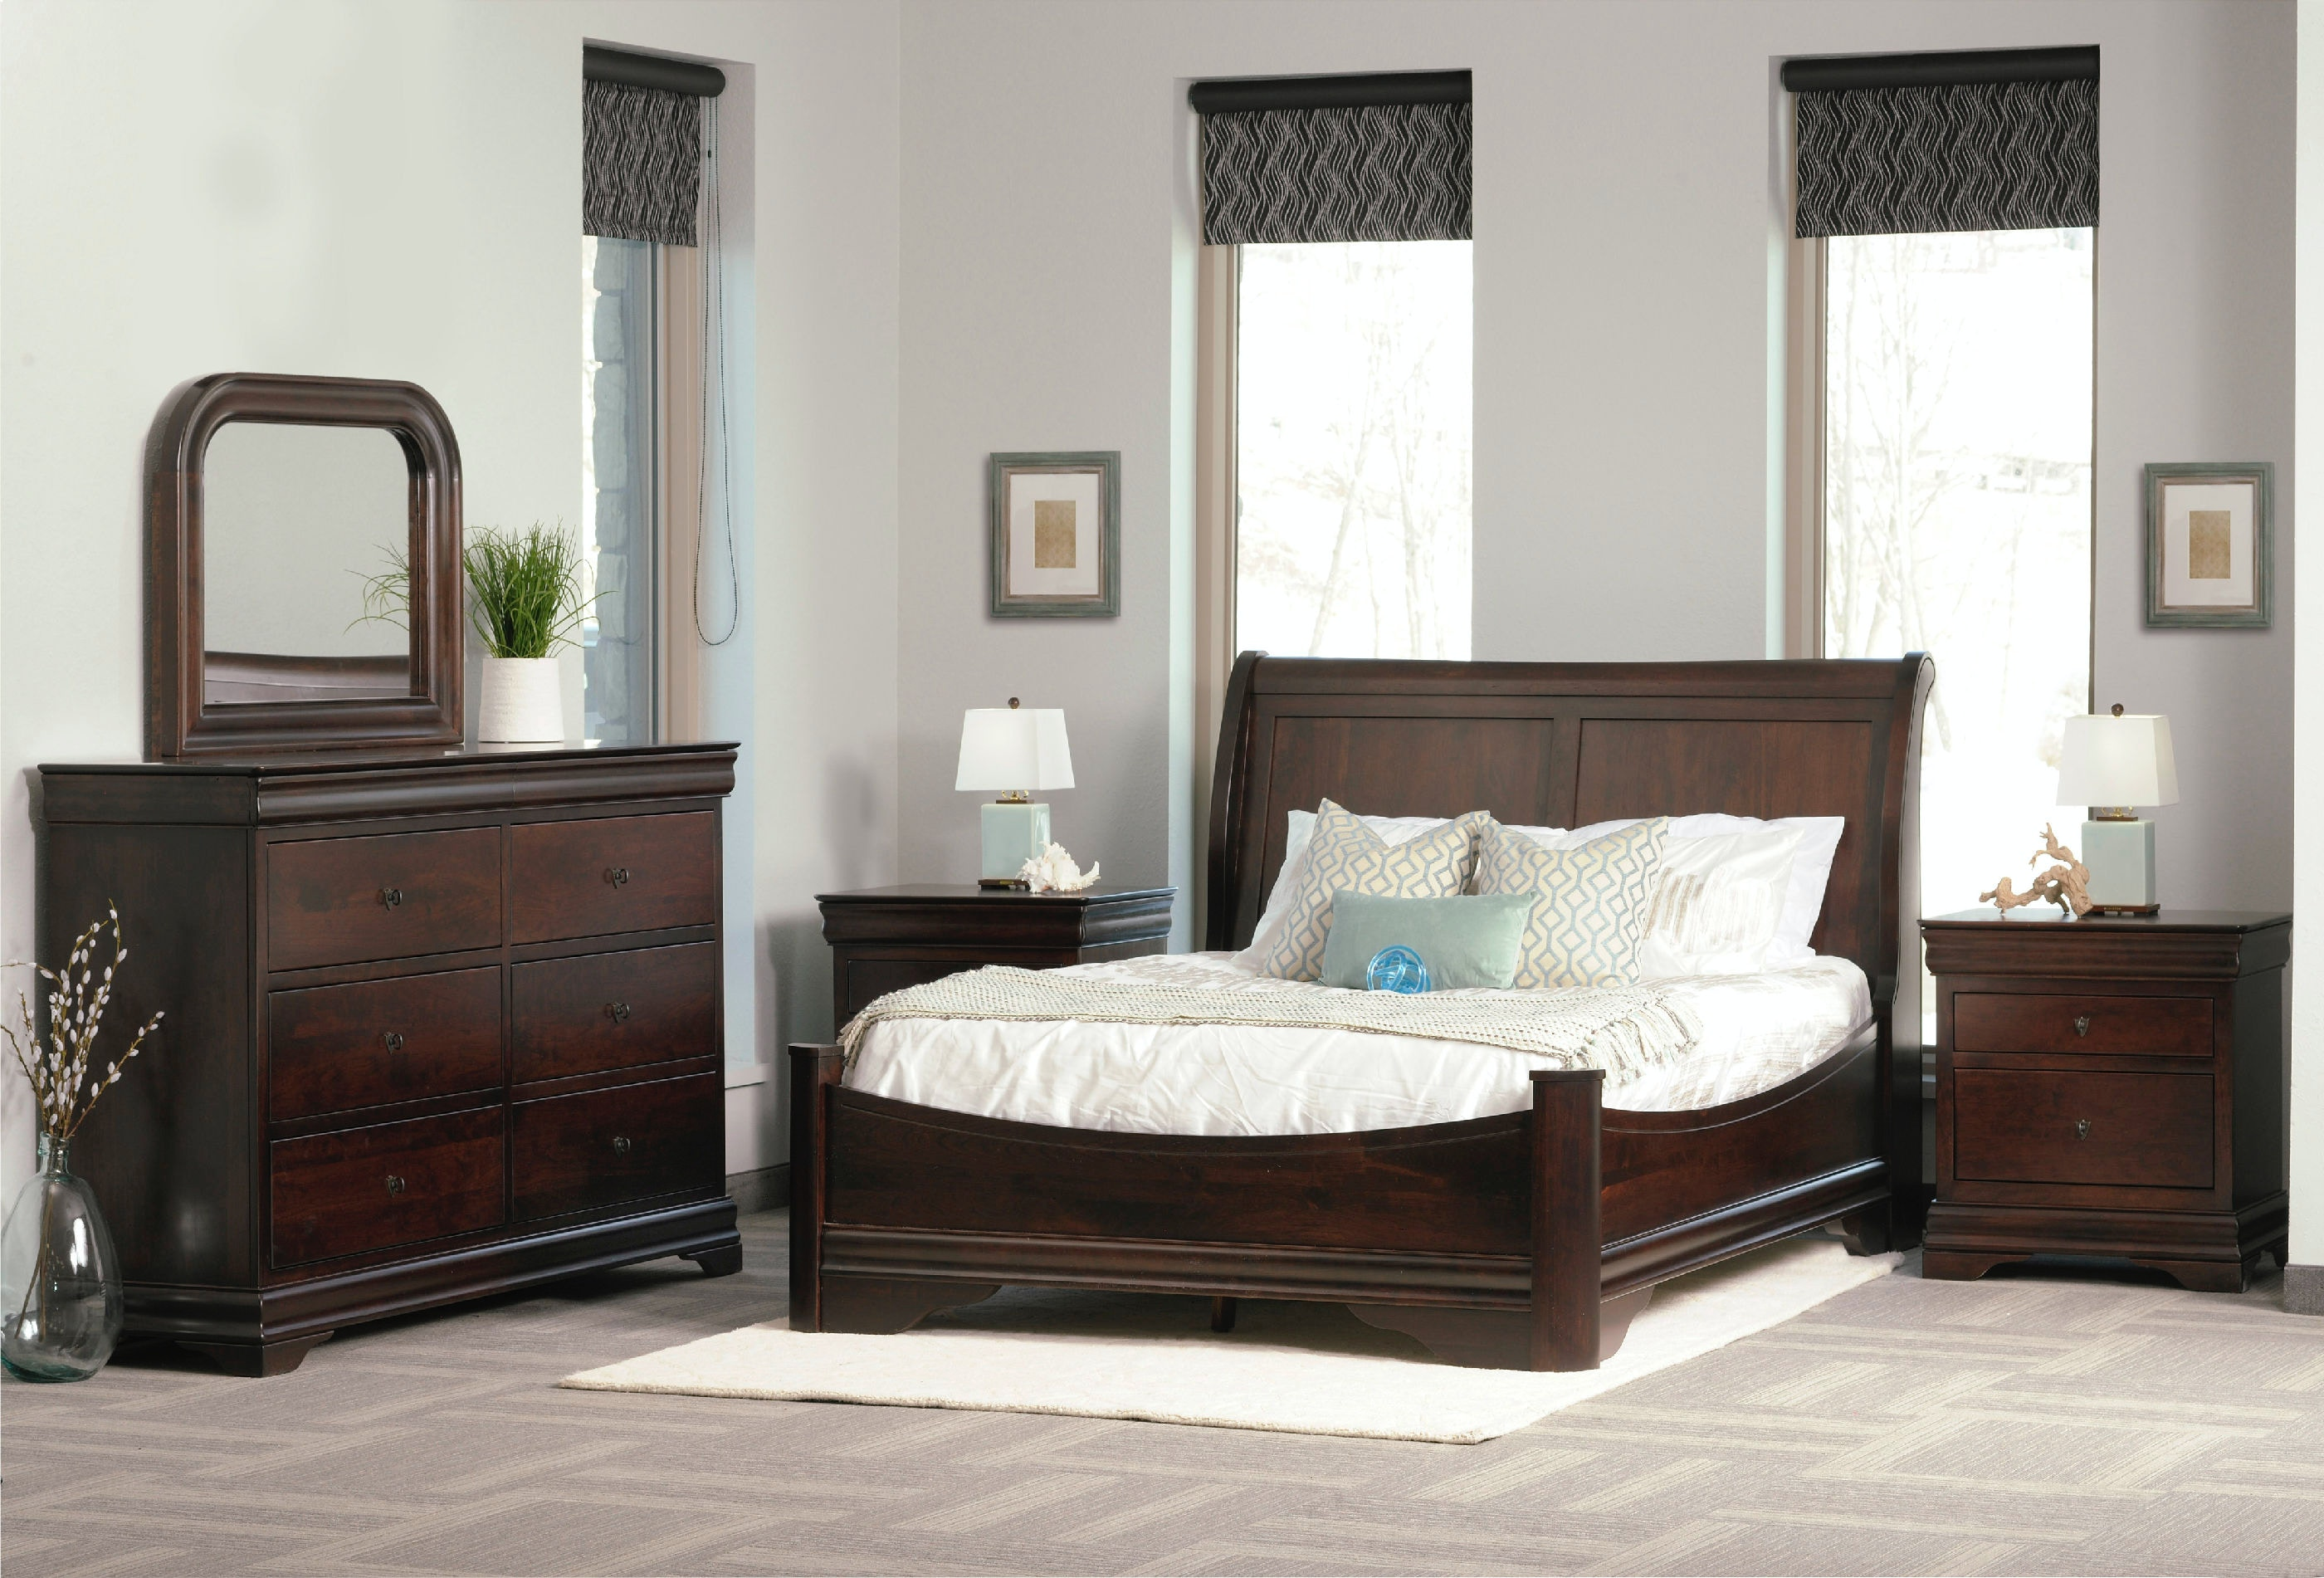 Palettes By Winesburg Avignon Sleigh Panel Bed With Left Side Drawers